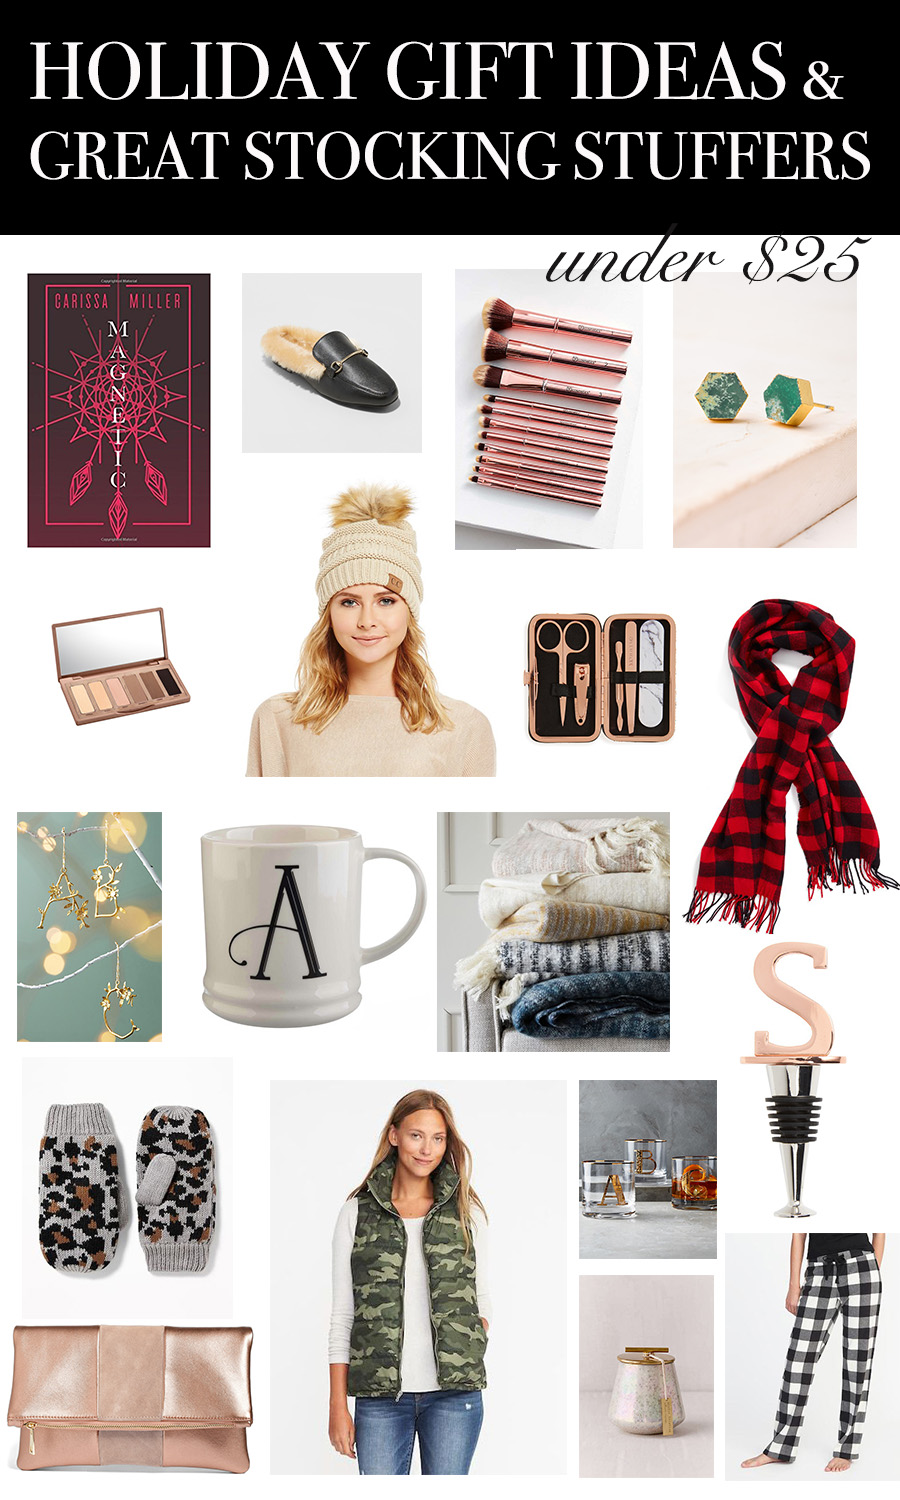 Affordable-Holiday-GIft-Ideas-Under-$25